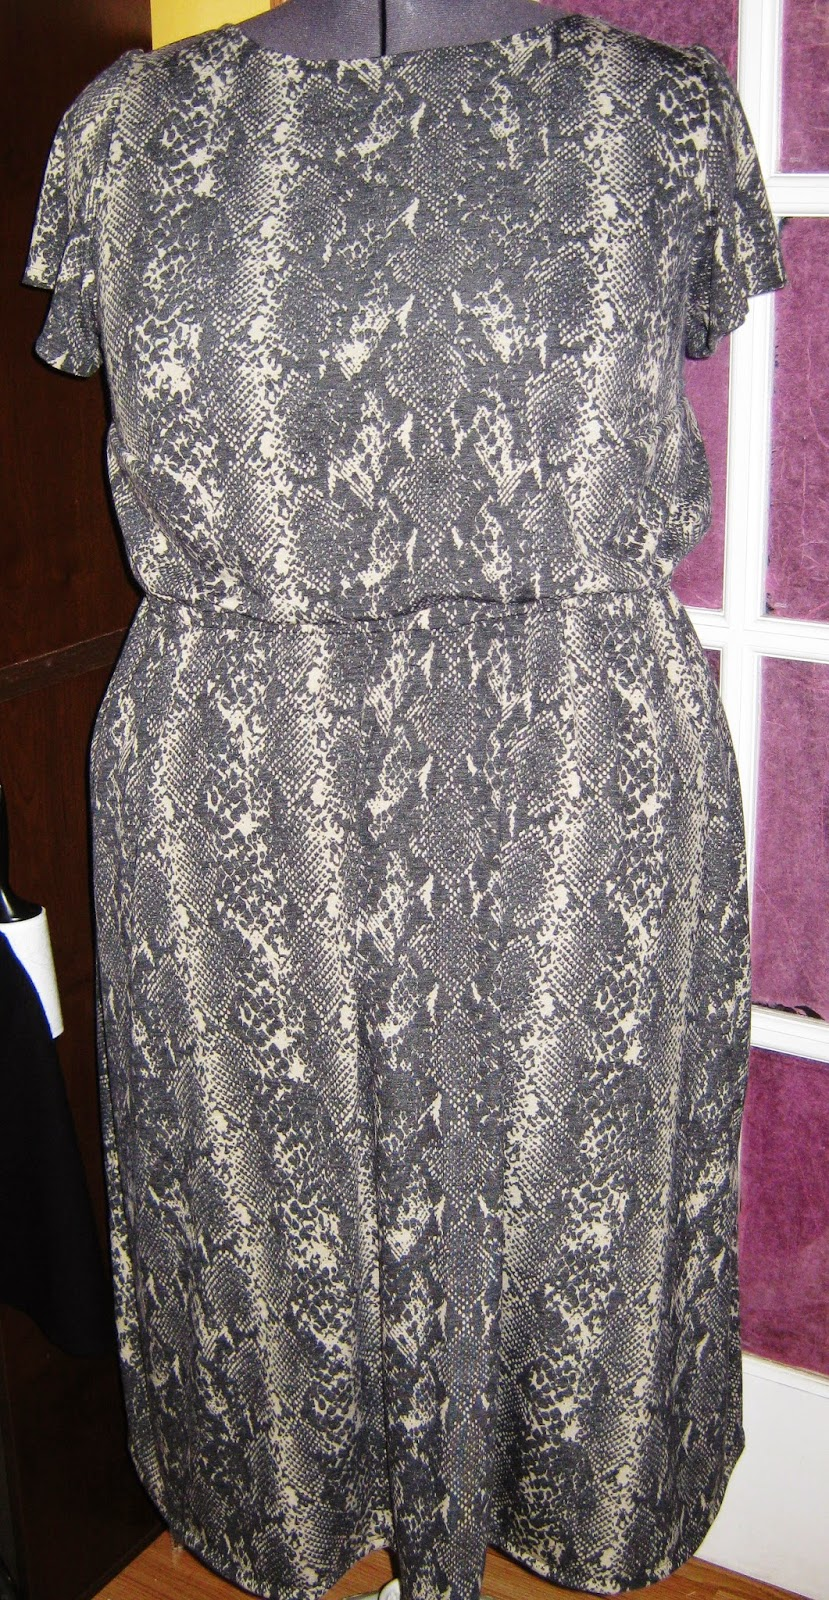 Snake Print Jersey Knit Dress www.sewplus.blogspot.com